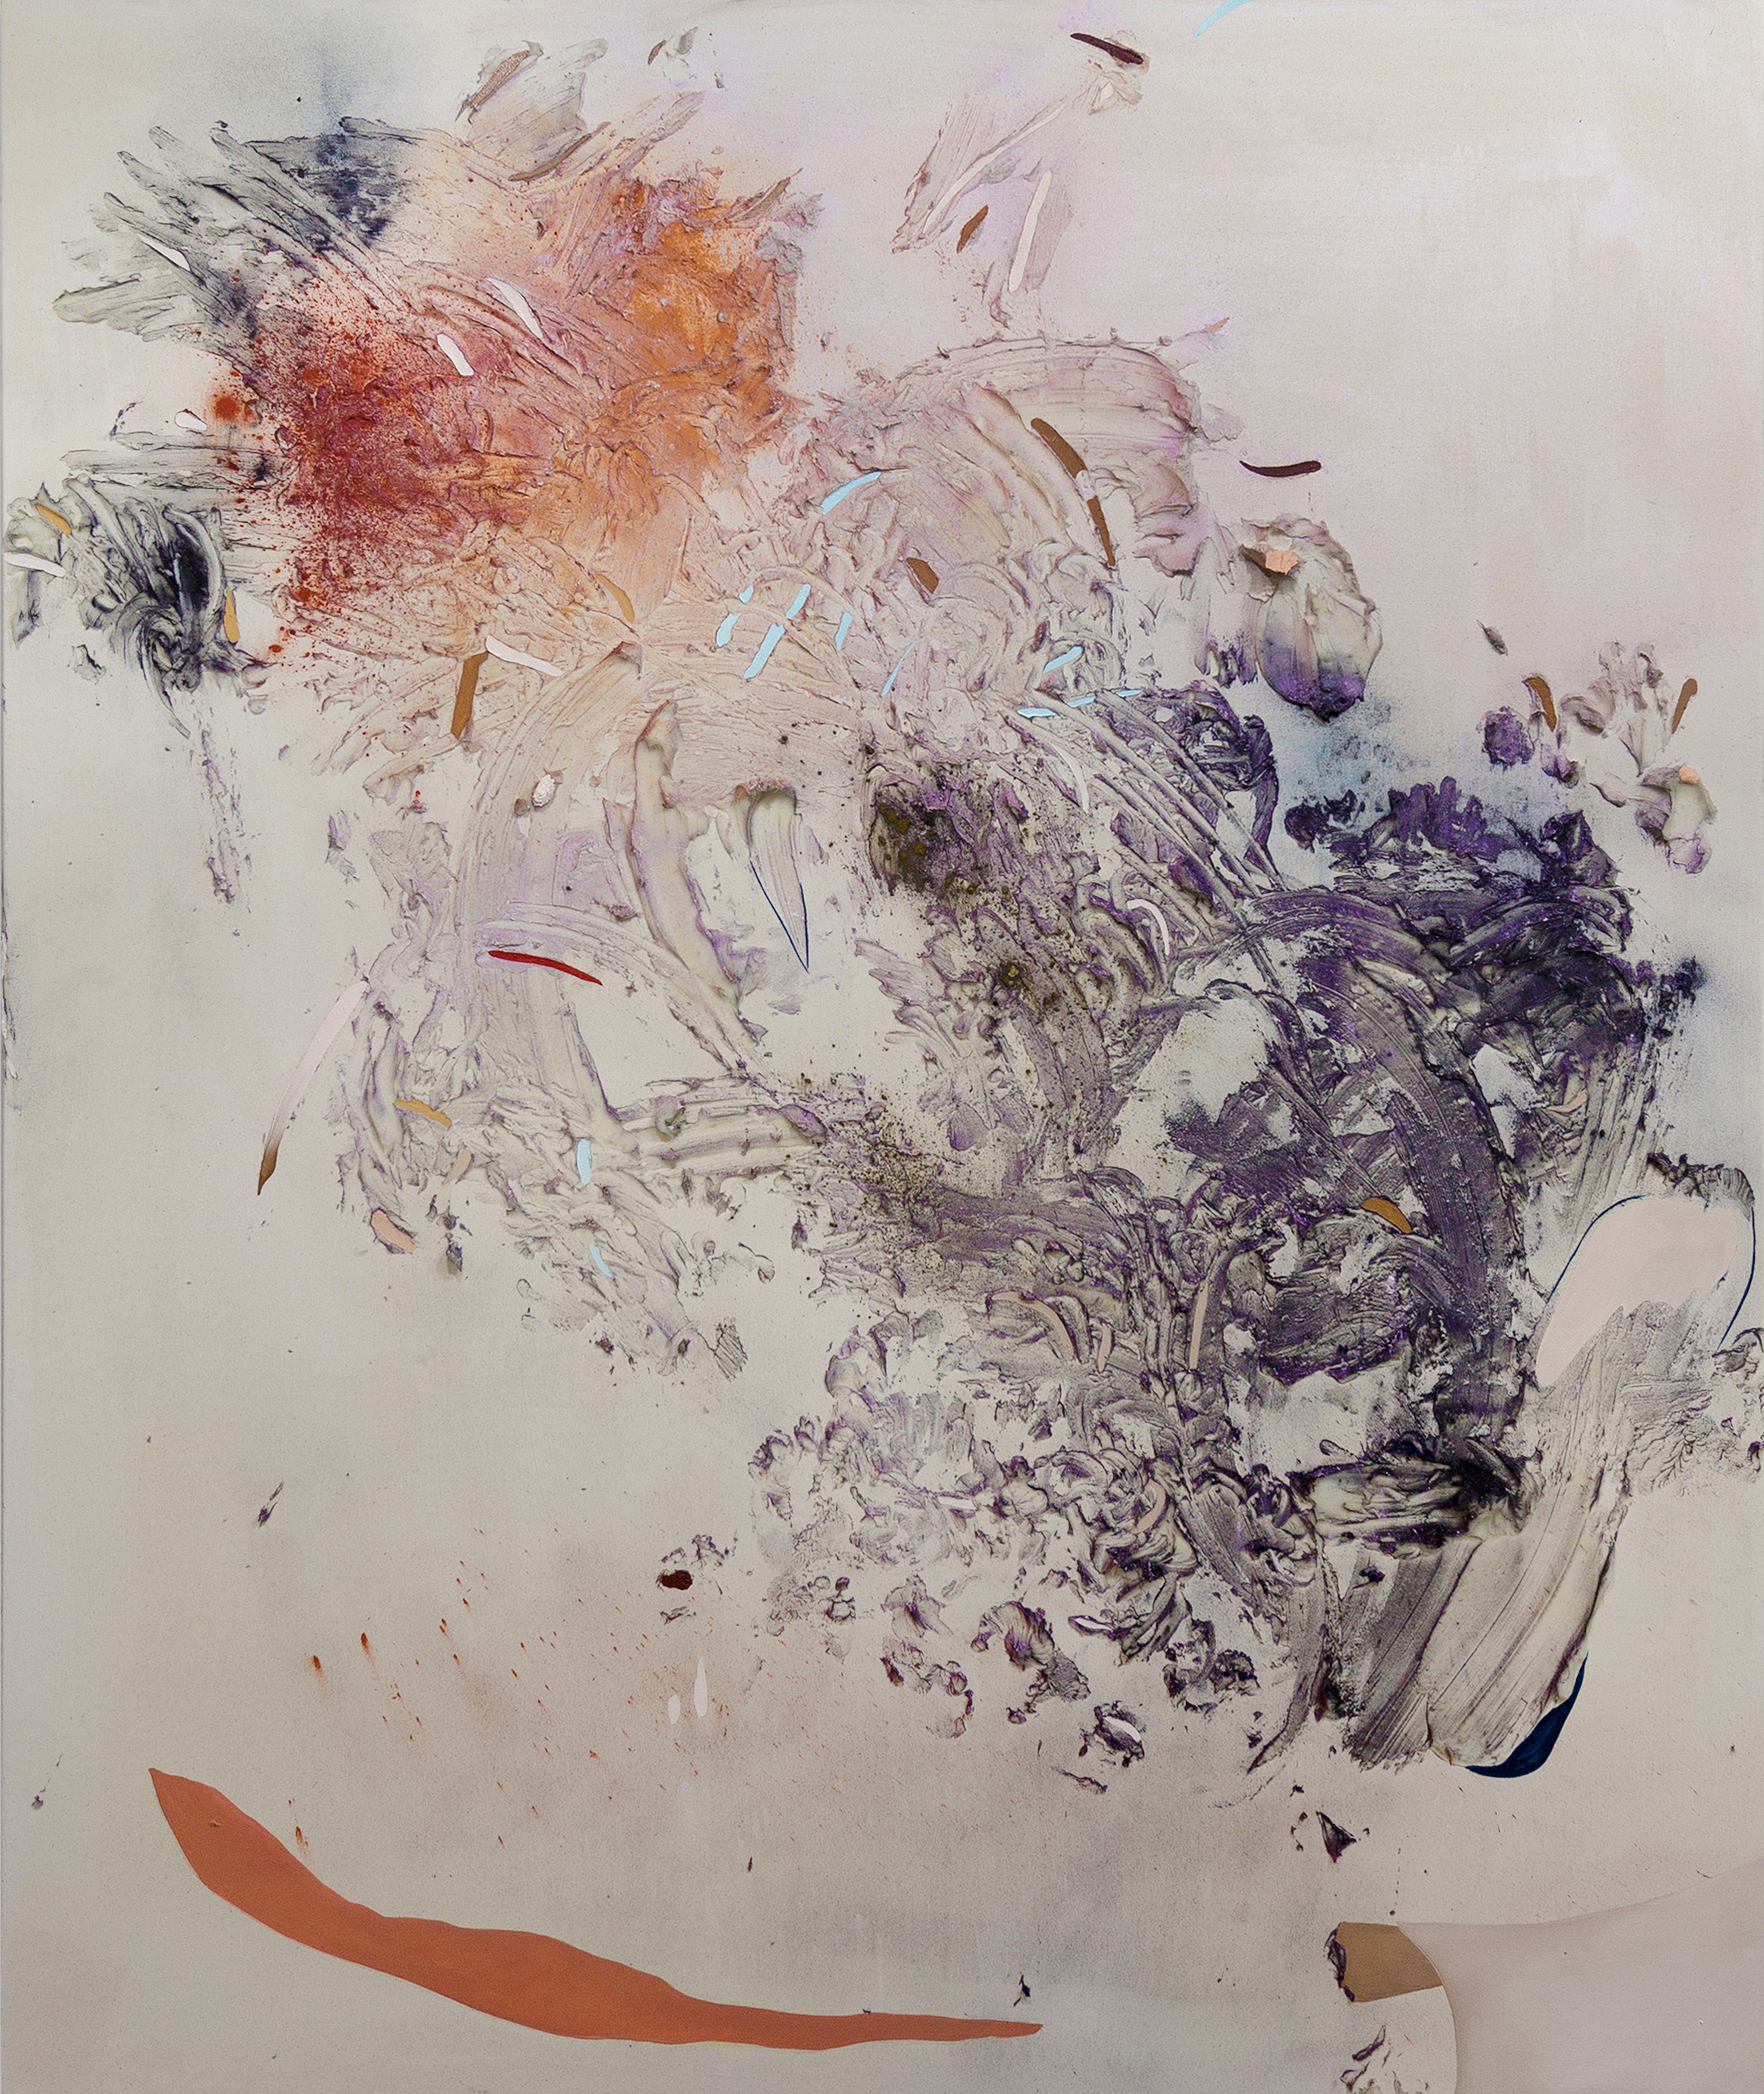 Gillian King,  Pyroclast. Cold wax medium, oil and raw pigments on canvas, 72x60 inches. 2016